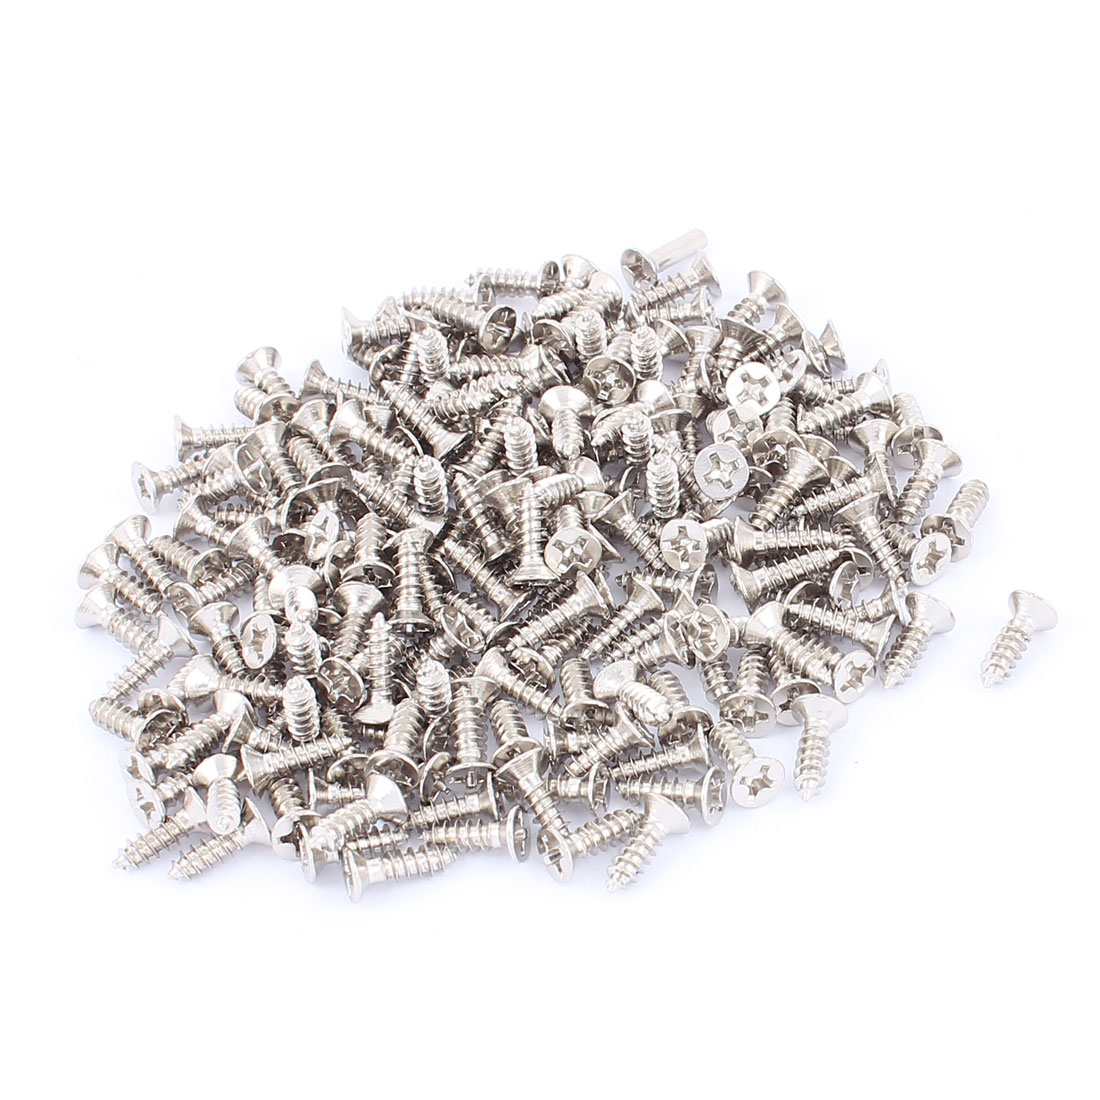 M3 x 9mm Phillips Truss Head Self Tapping Drilling Screws 200pcs